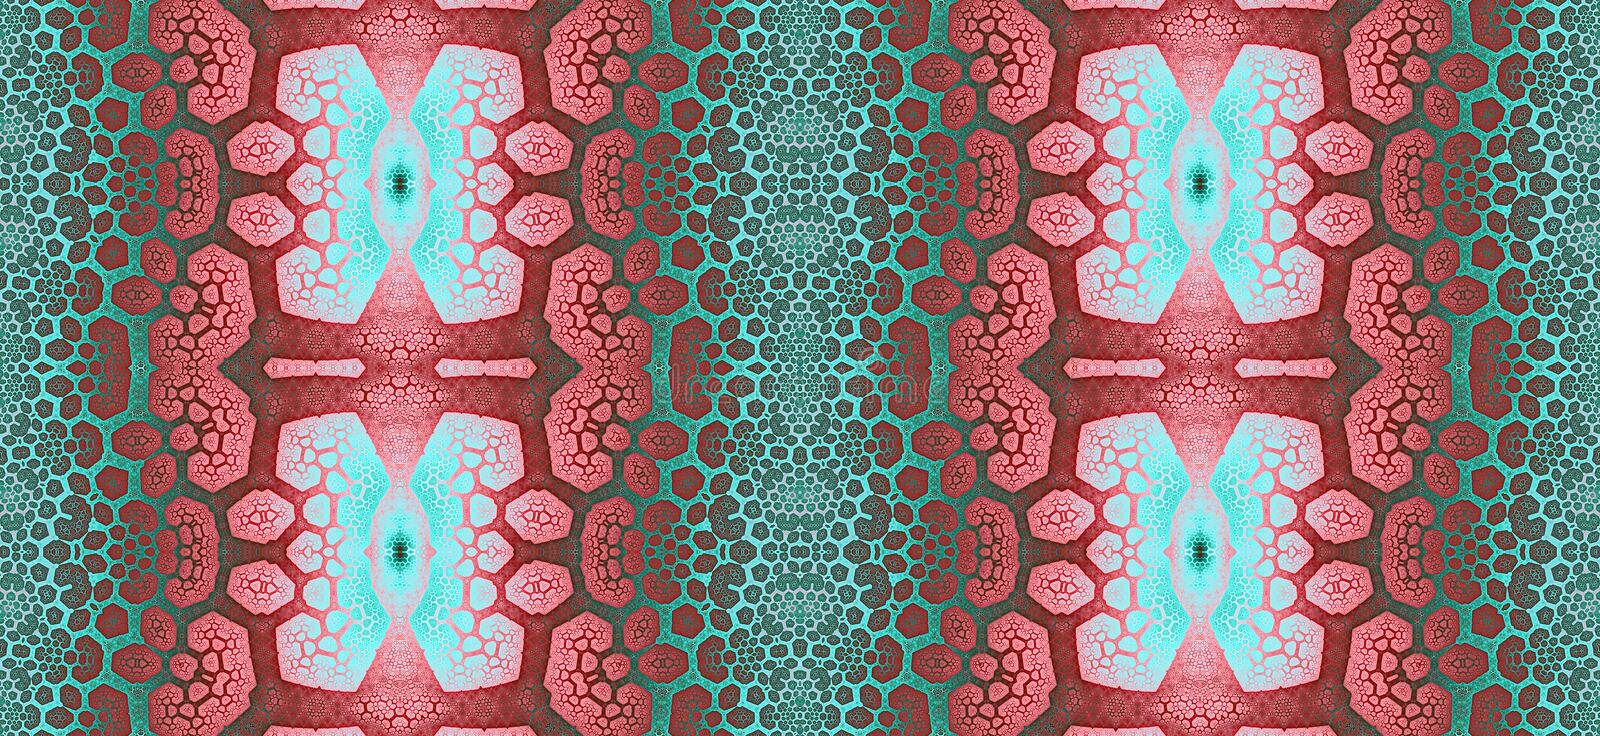 Abstract fractal high resolution seamless pattern for carpets, tapestries, fabric and wallpapers or any creative other use vector illustration